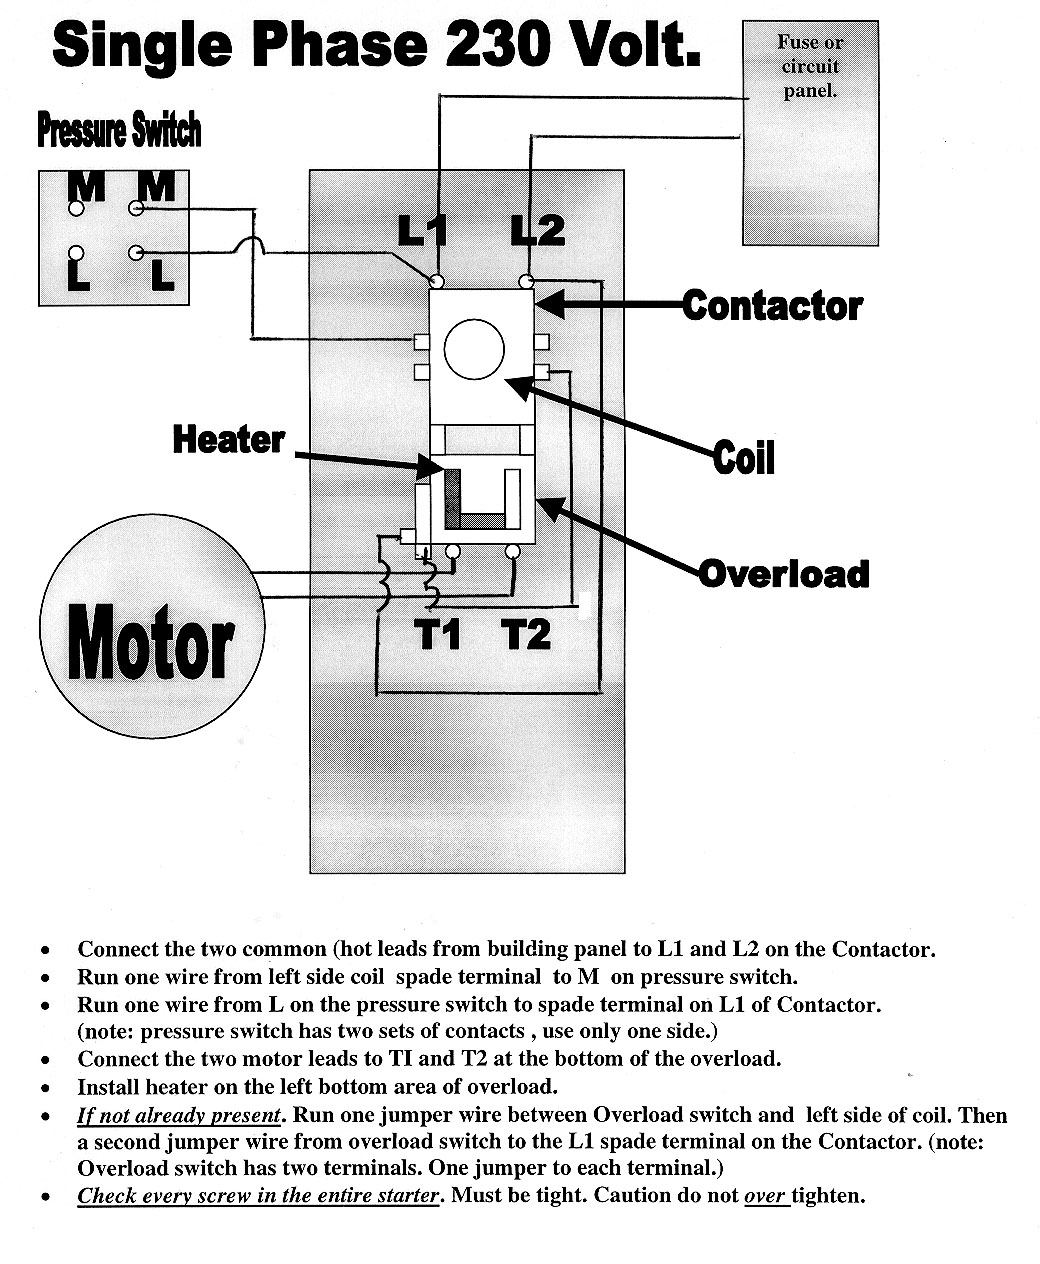 240v single phase motor wiring diagram wiring data rh unroutine co